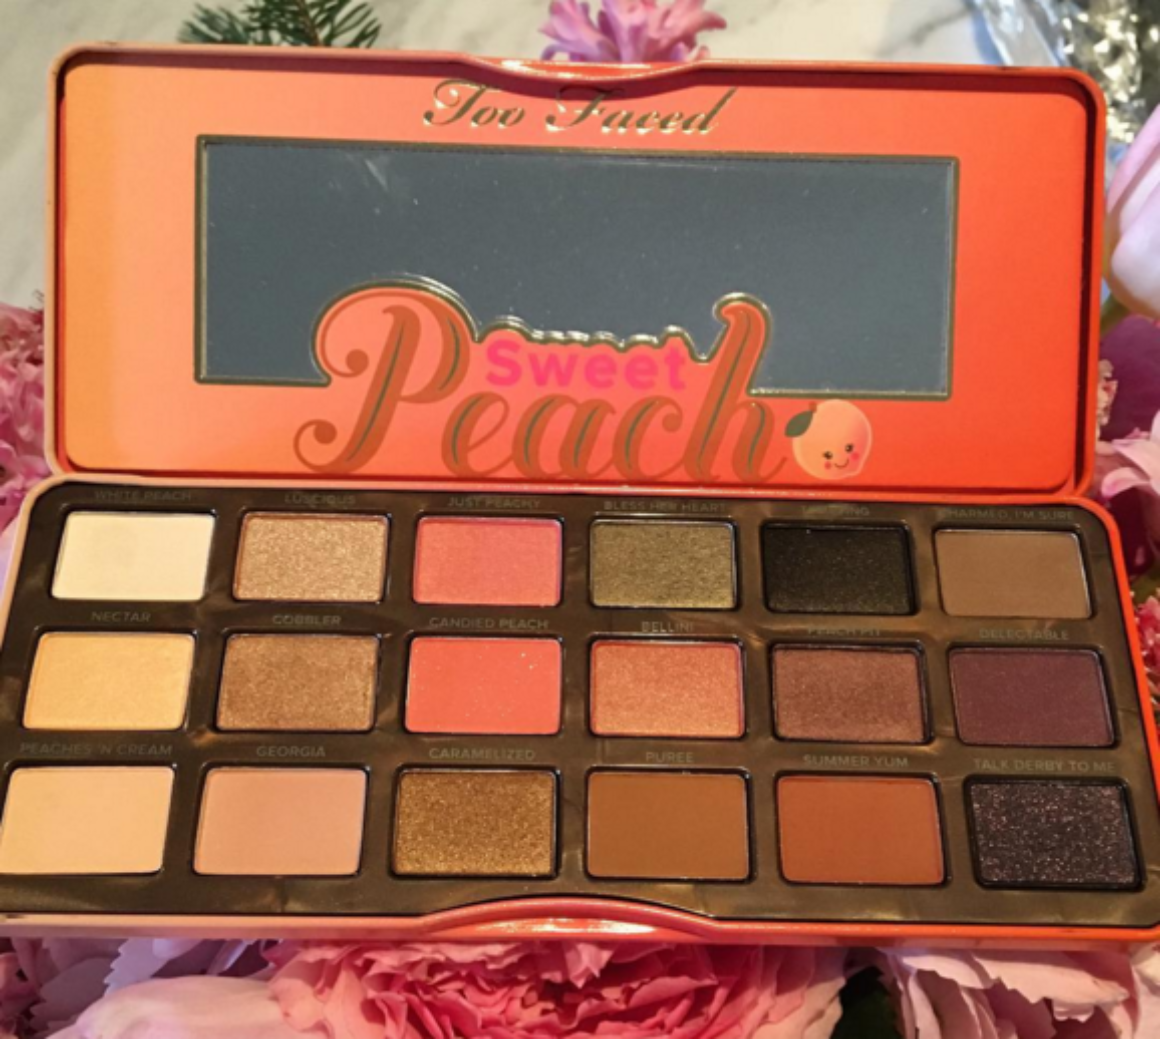 Coming Soon: Too Faced Sweet Peach Palette